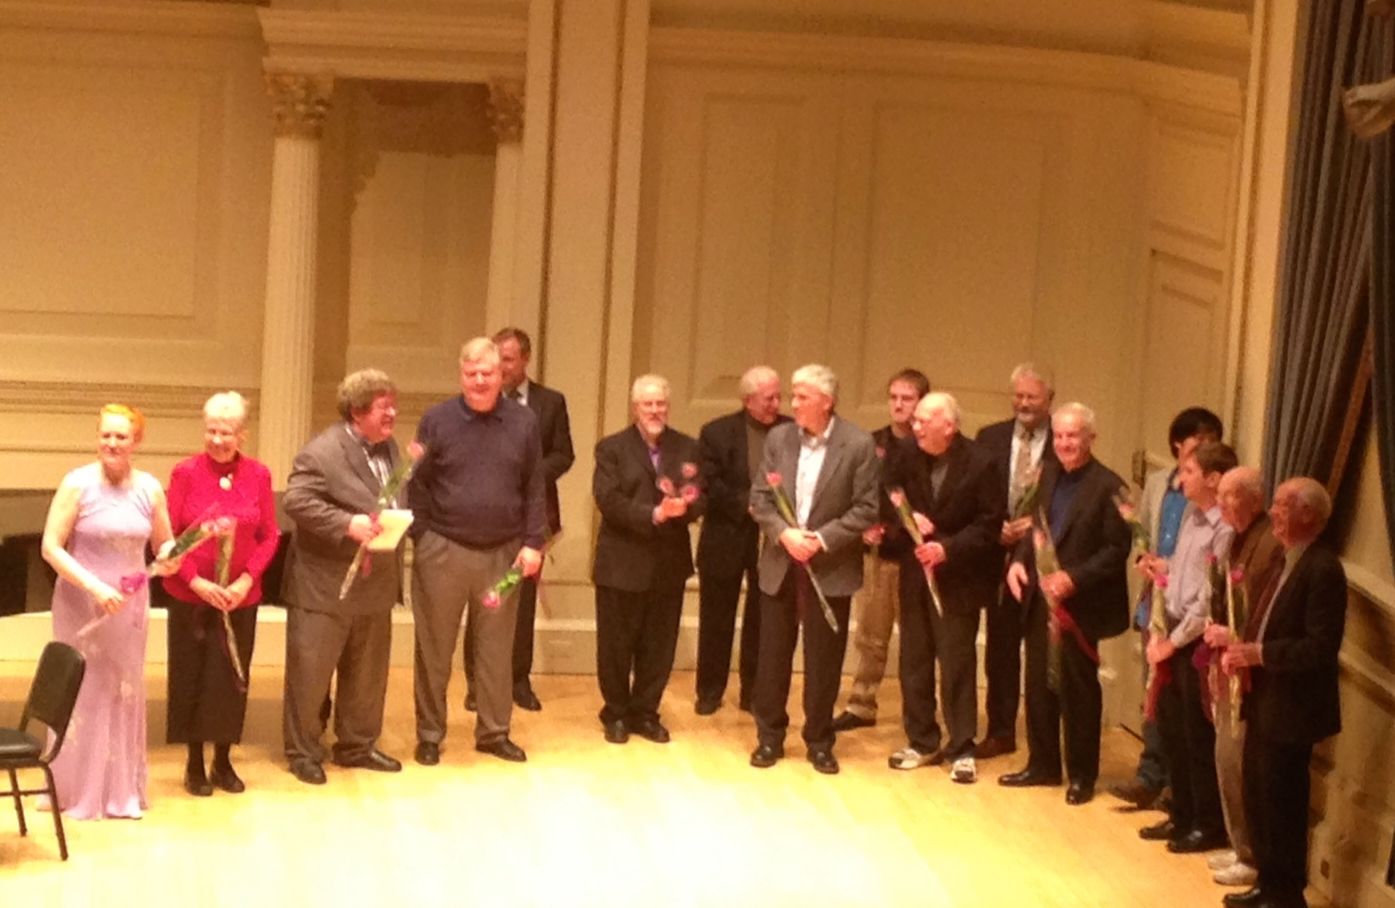 "PV with 13 of the 16 composers featured on Ron Levy's ""In Celebration of the Composer"" - 11-29-13   (l-r) Margaret, Nancy Bloomer Deussen, Eric Ewazen, Joseph Turrin, Don Mokrynski, Ron Levy, David Gilbert, Patrick Finley, Michael D. Parsons, Godfrey Schroth, David Sampson, Dennis LeoGrande, Sunbin Kim, Ben Hackett, Fred Messner, John Lampkin"